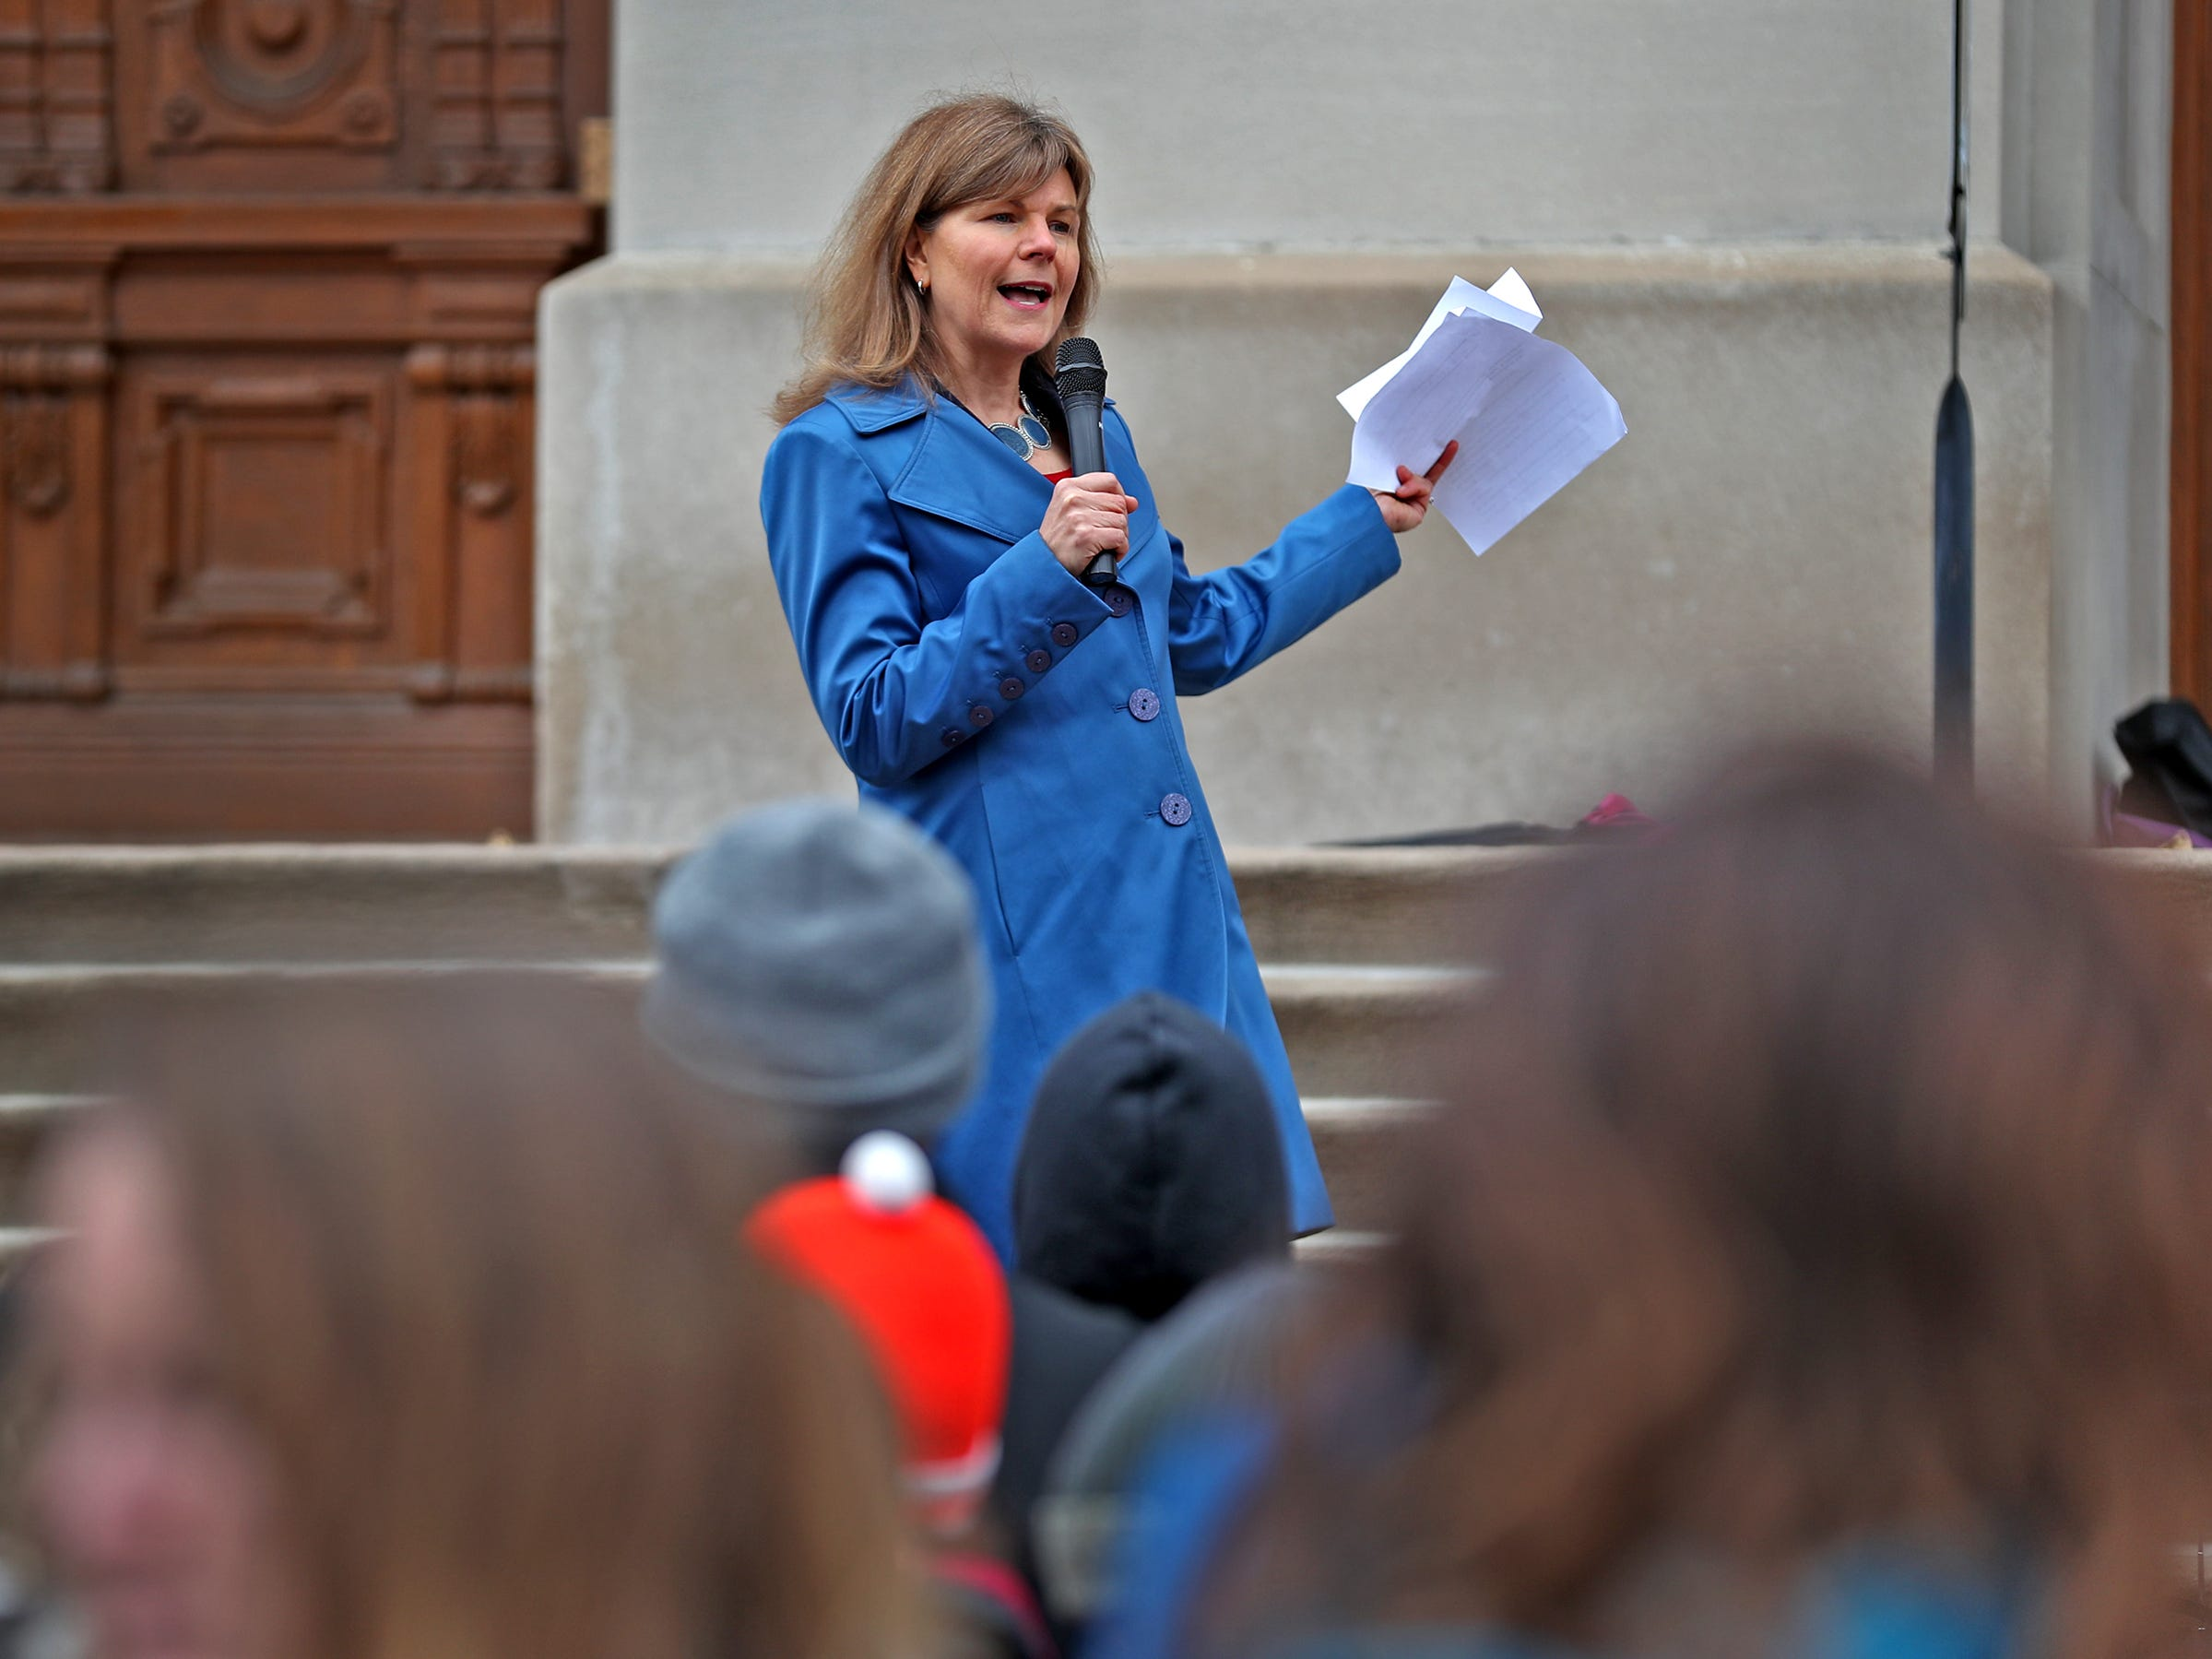 Indiana Representative Carey Hamilton addresses the crowd during the Indiana part of the international Climate Strike, Friday, March 15, 2019, held outside the Indiana Statehouse.  Following in the footsteps of 16-year-old Swedish trailblazer, Greta Thunberg, students around the world are skipping school to protest government inaction on climate change.